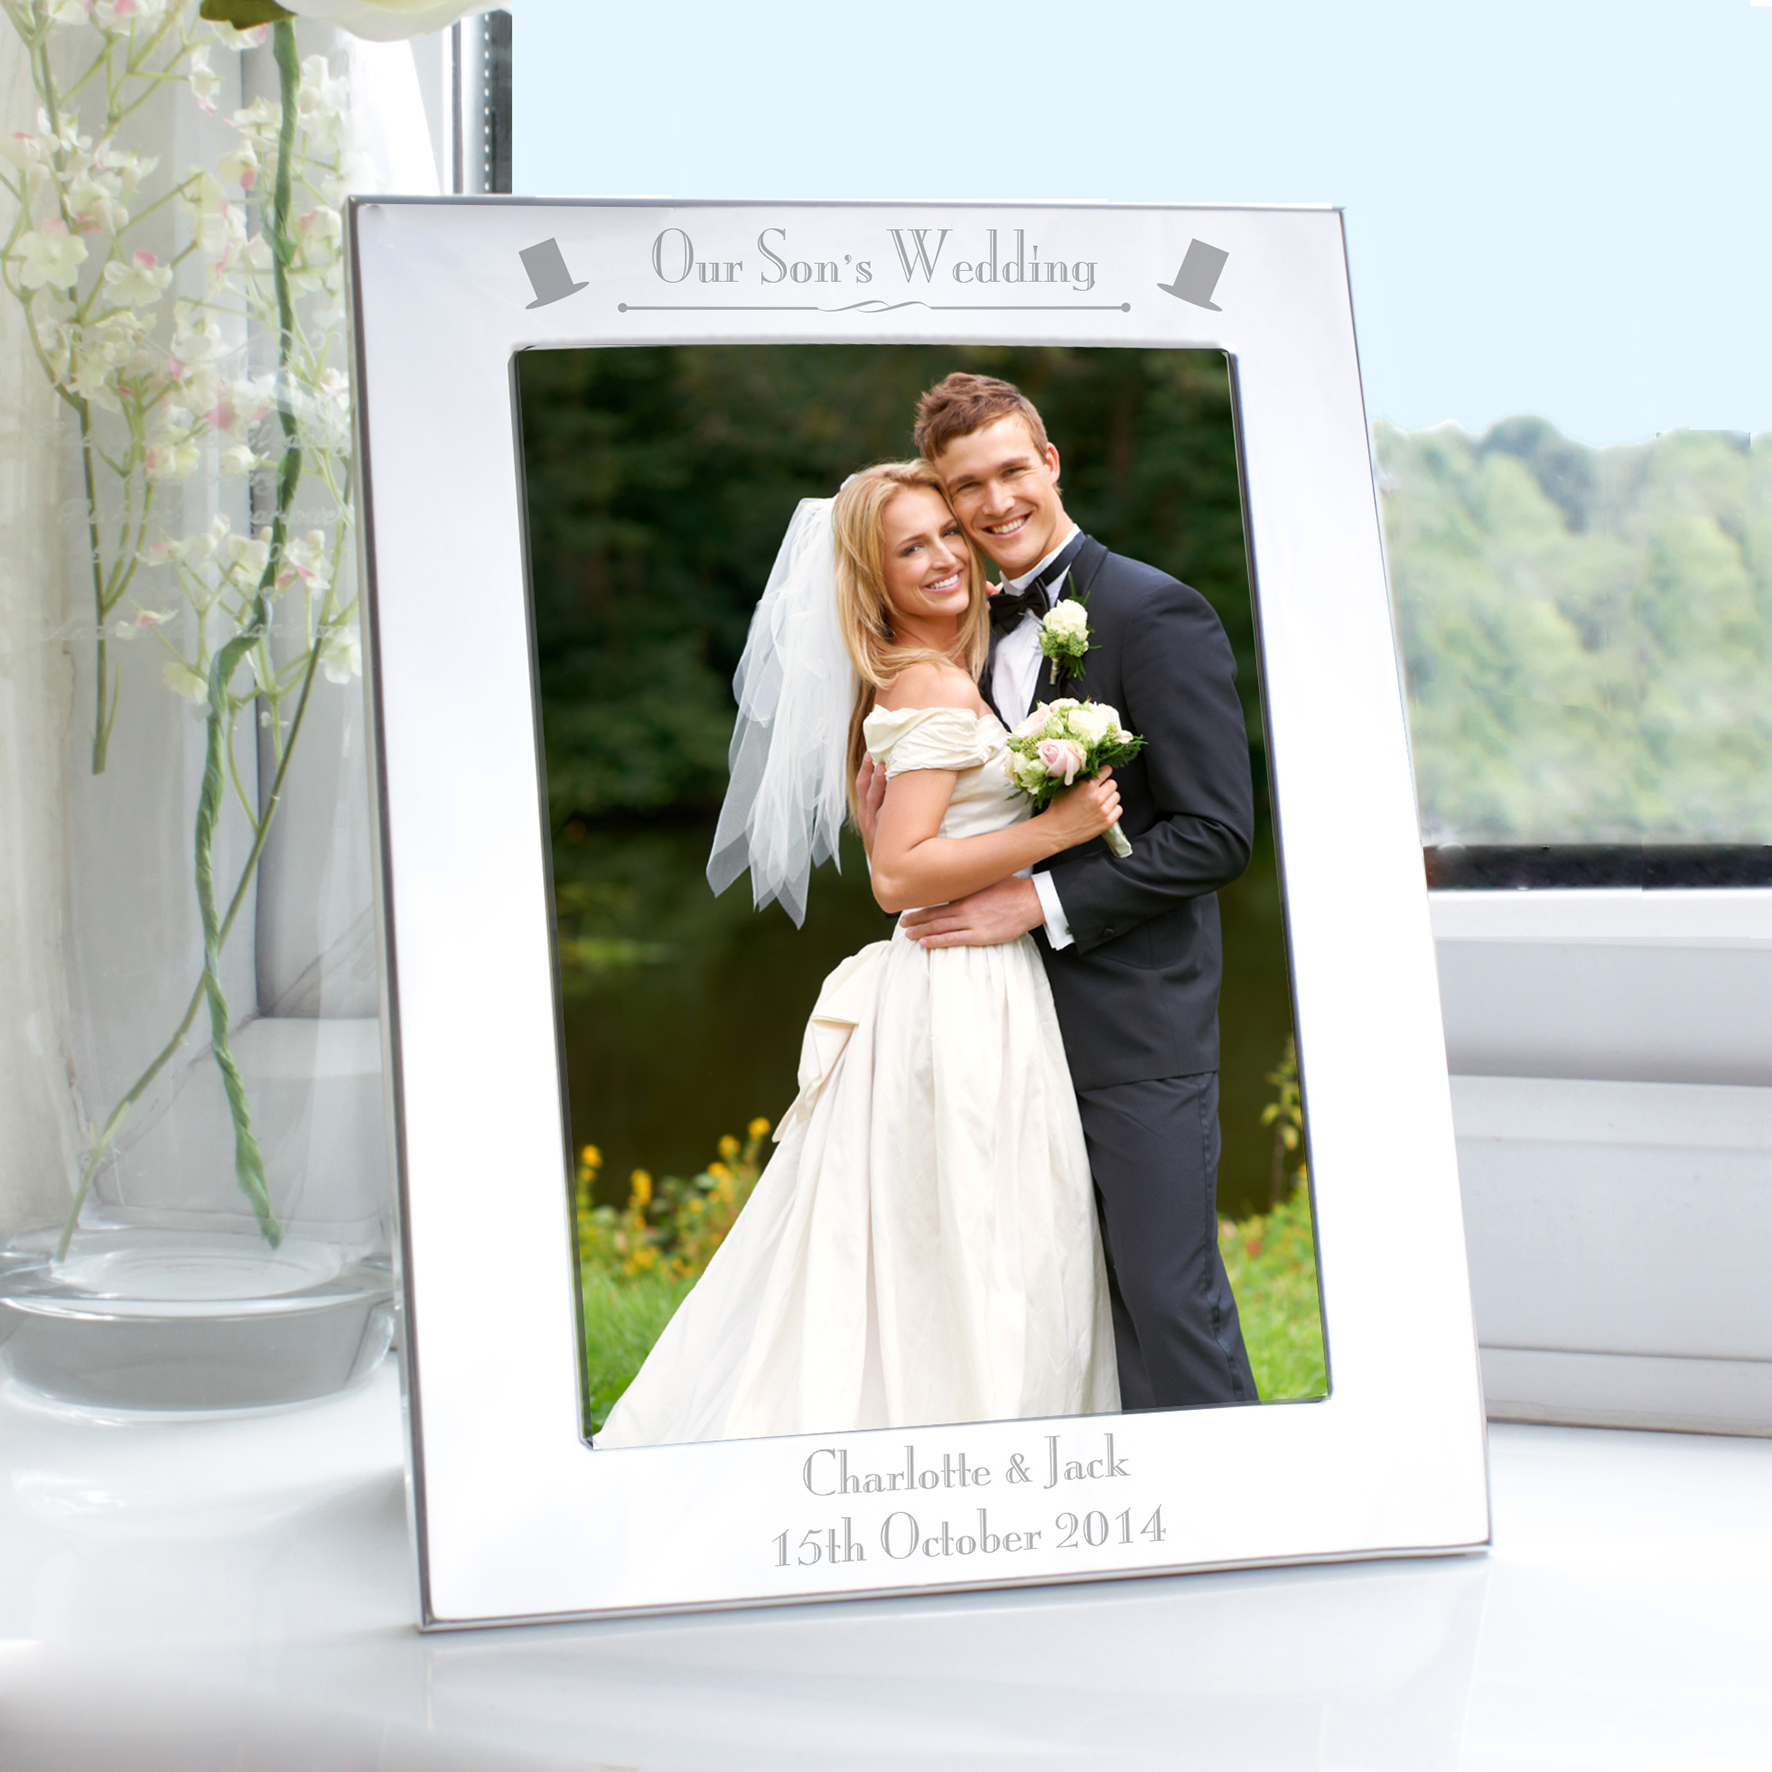 Engraved Silver Decorative Design Our Son's Wedding Frame